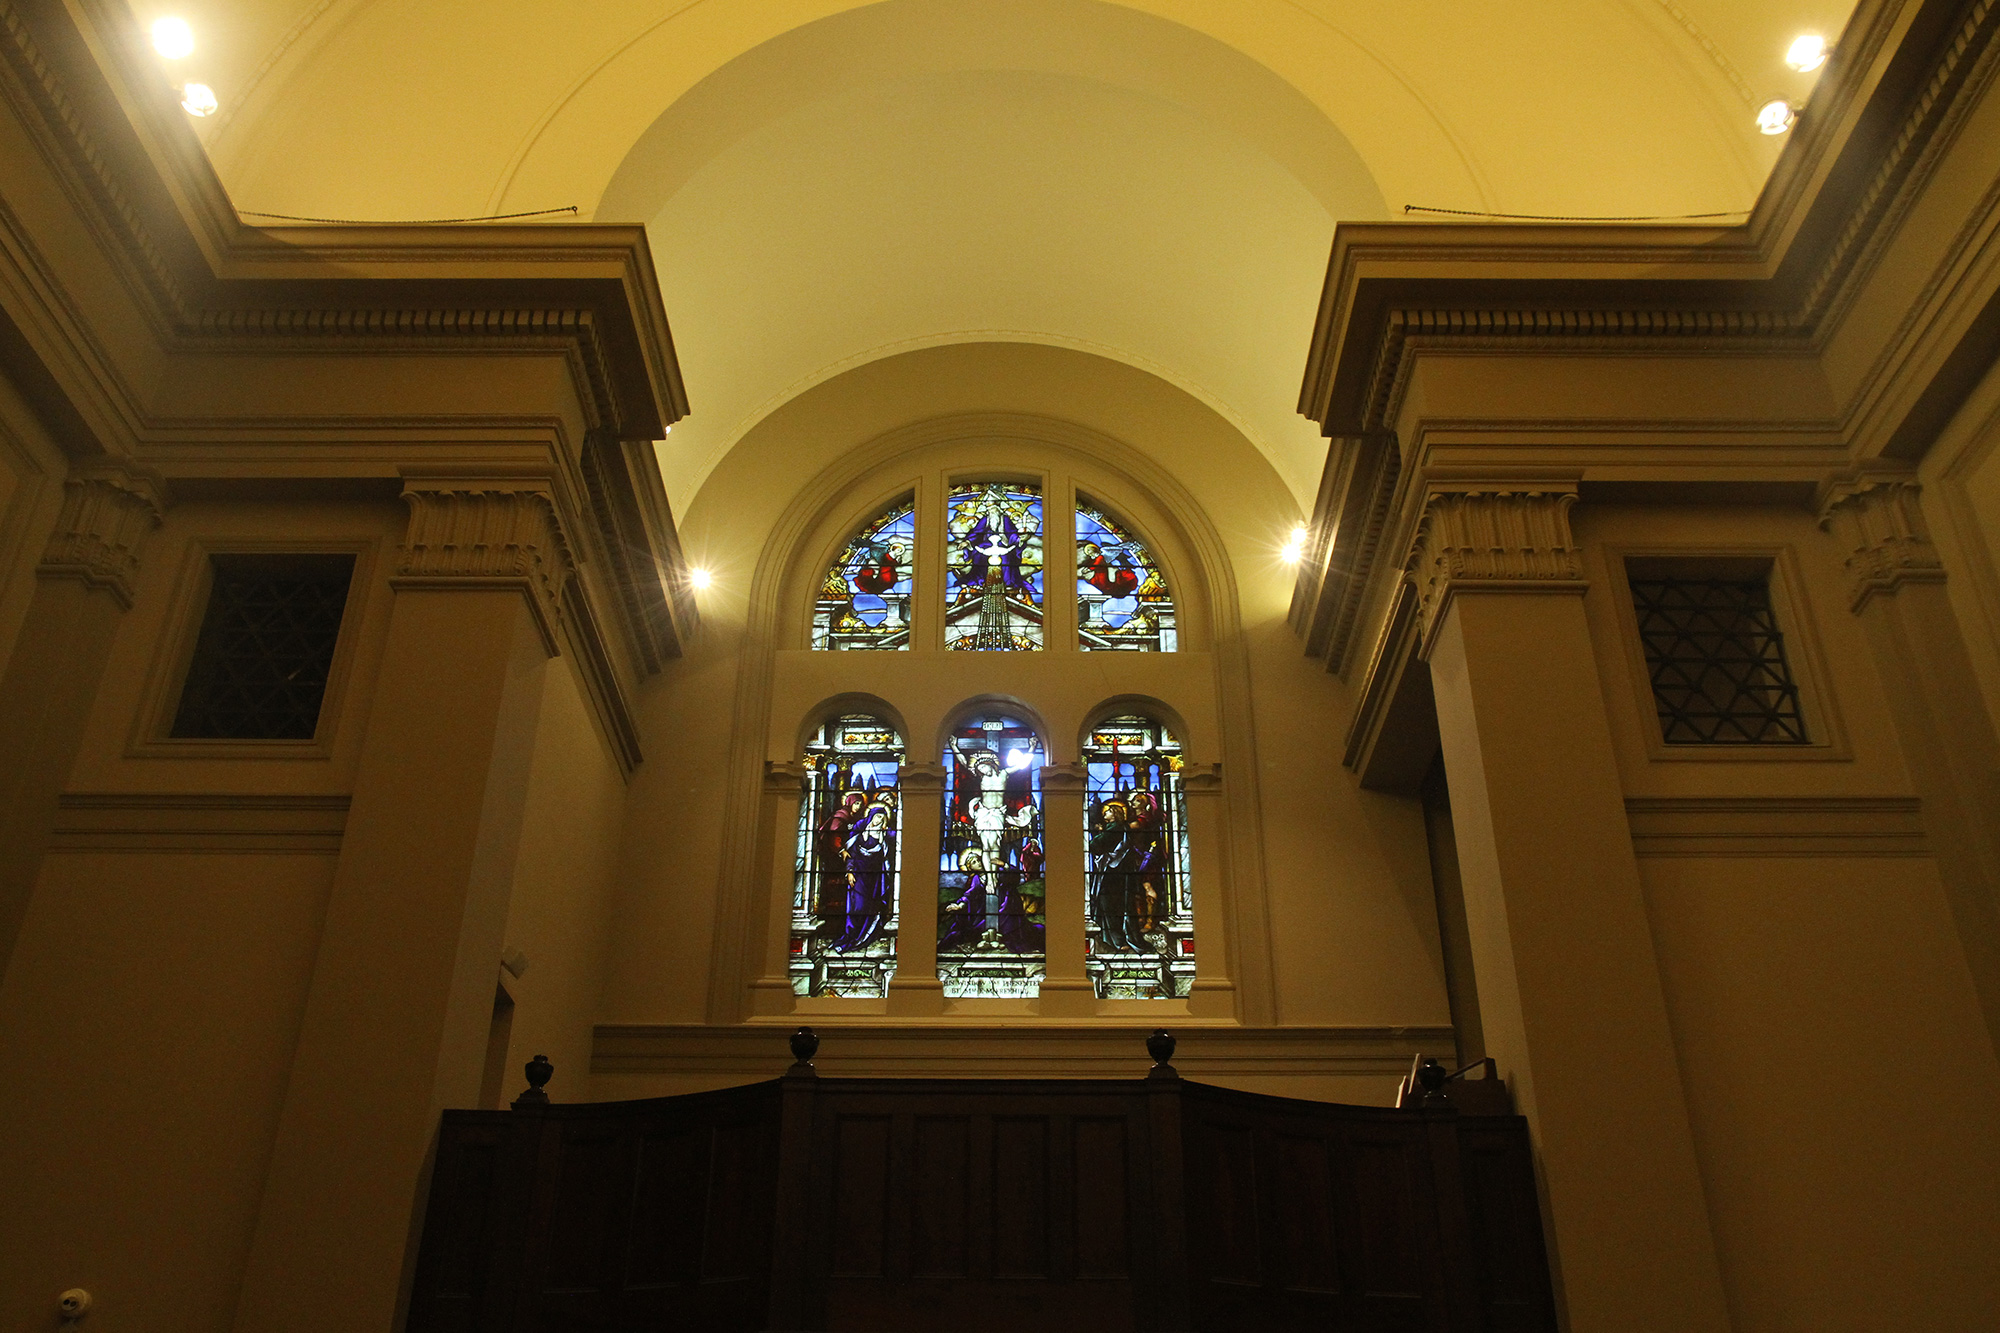 Rear stained glass window above the choir loft